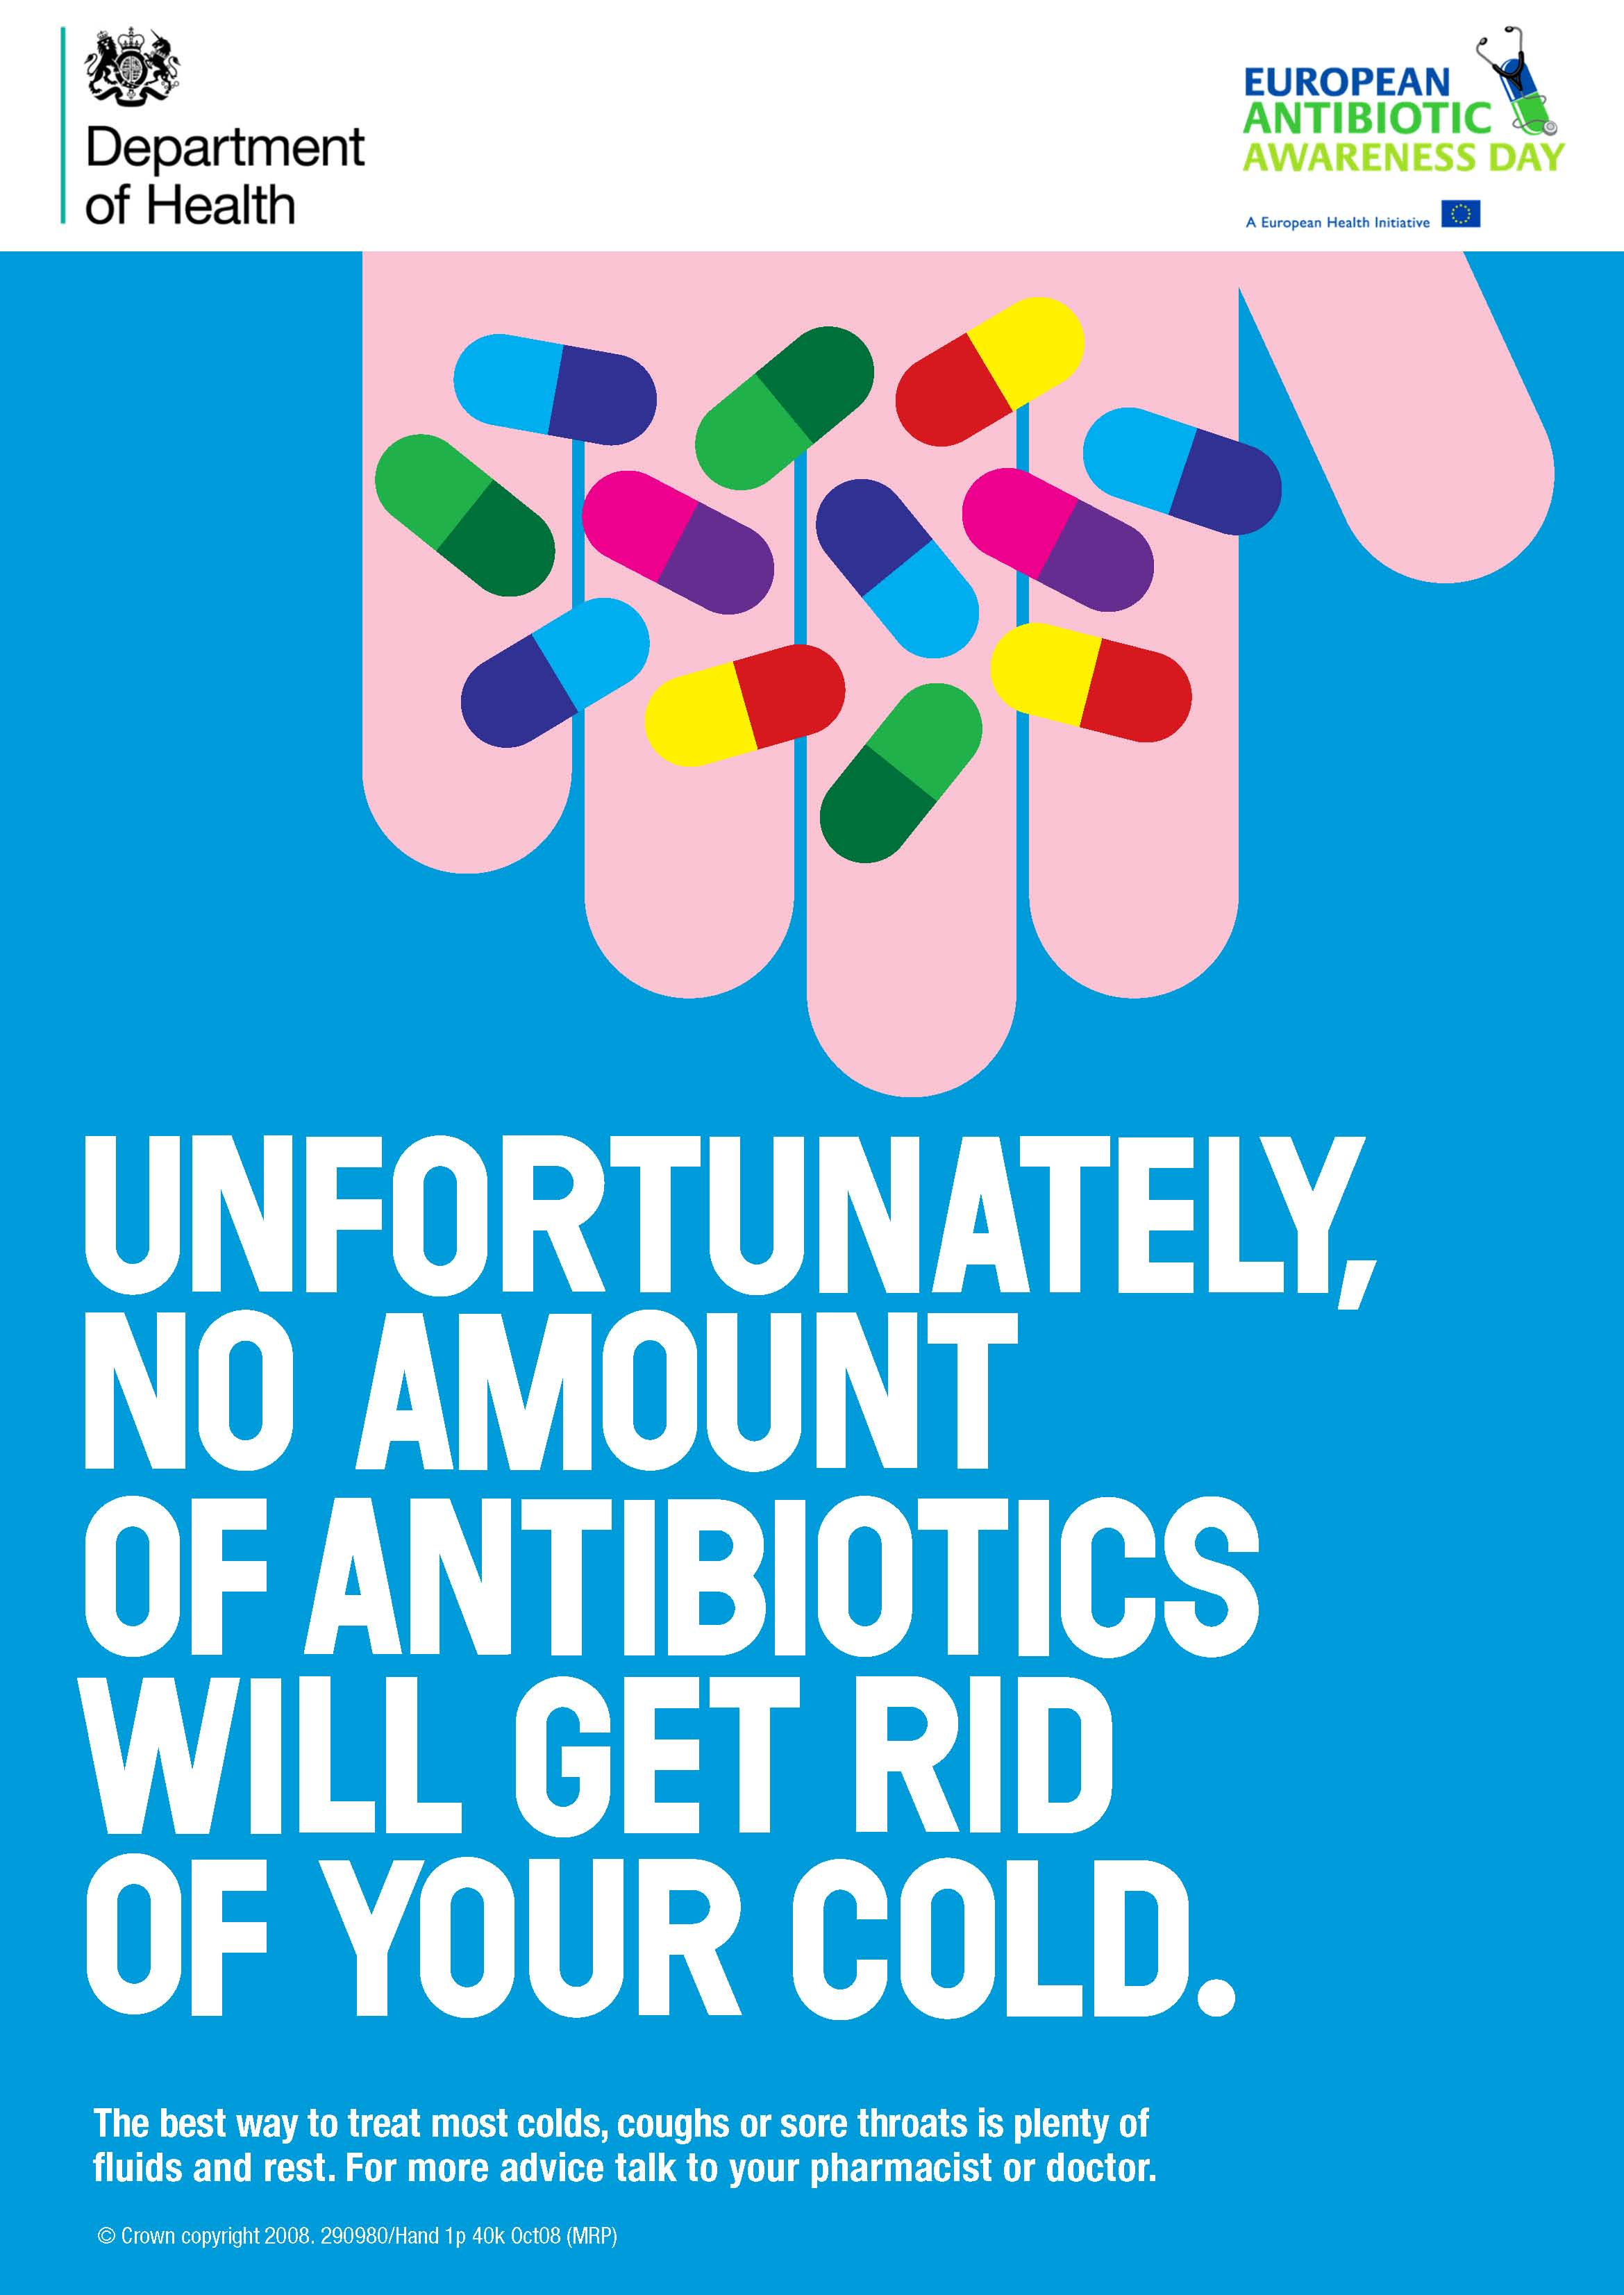 Poster antibiotics will not get rid of your cold refg antibiotics many routine treatments will become increasingly dangerous setting broken bones basic operations even chemotherapy all rely on access ccuart Images